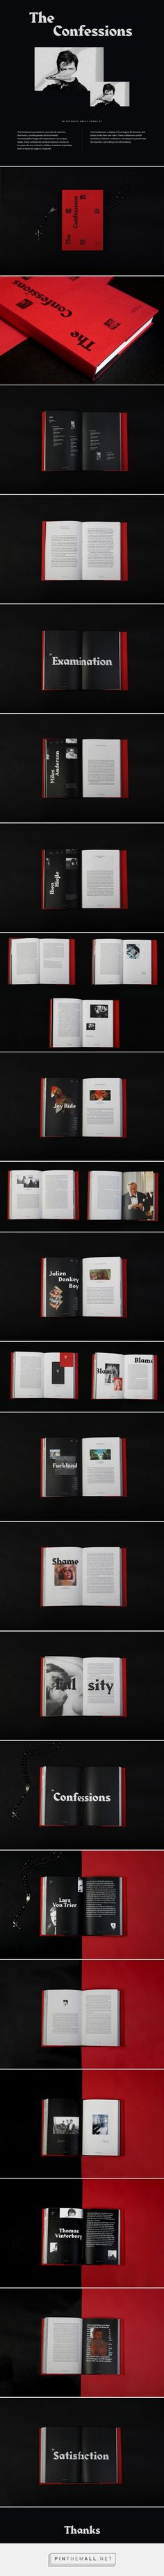 The Confessions on Behance - created via https://pinthemall.net